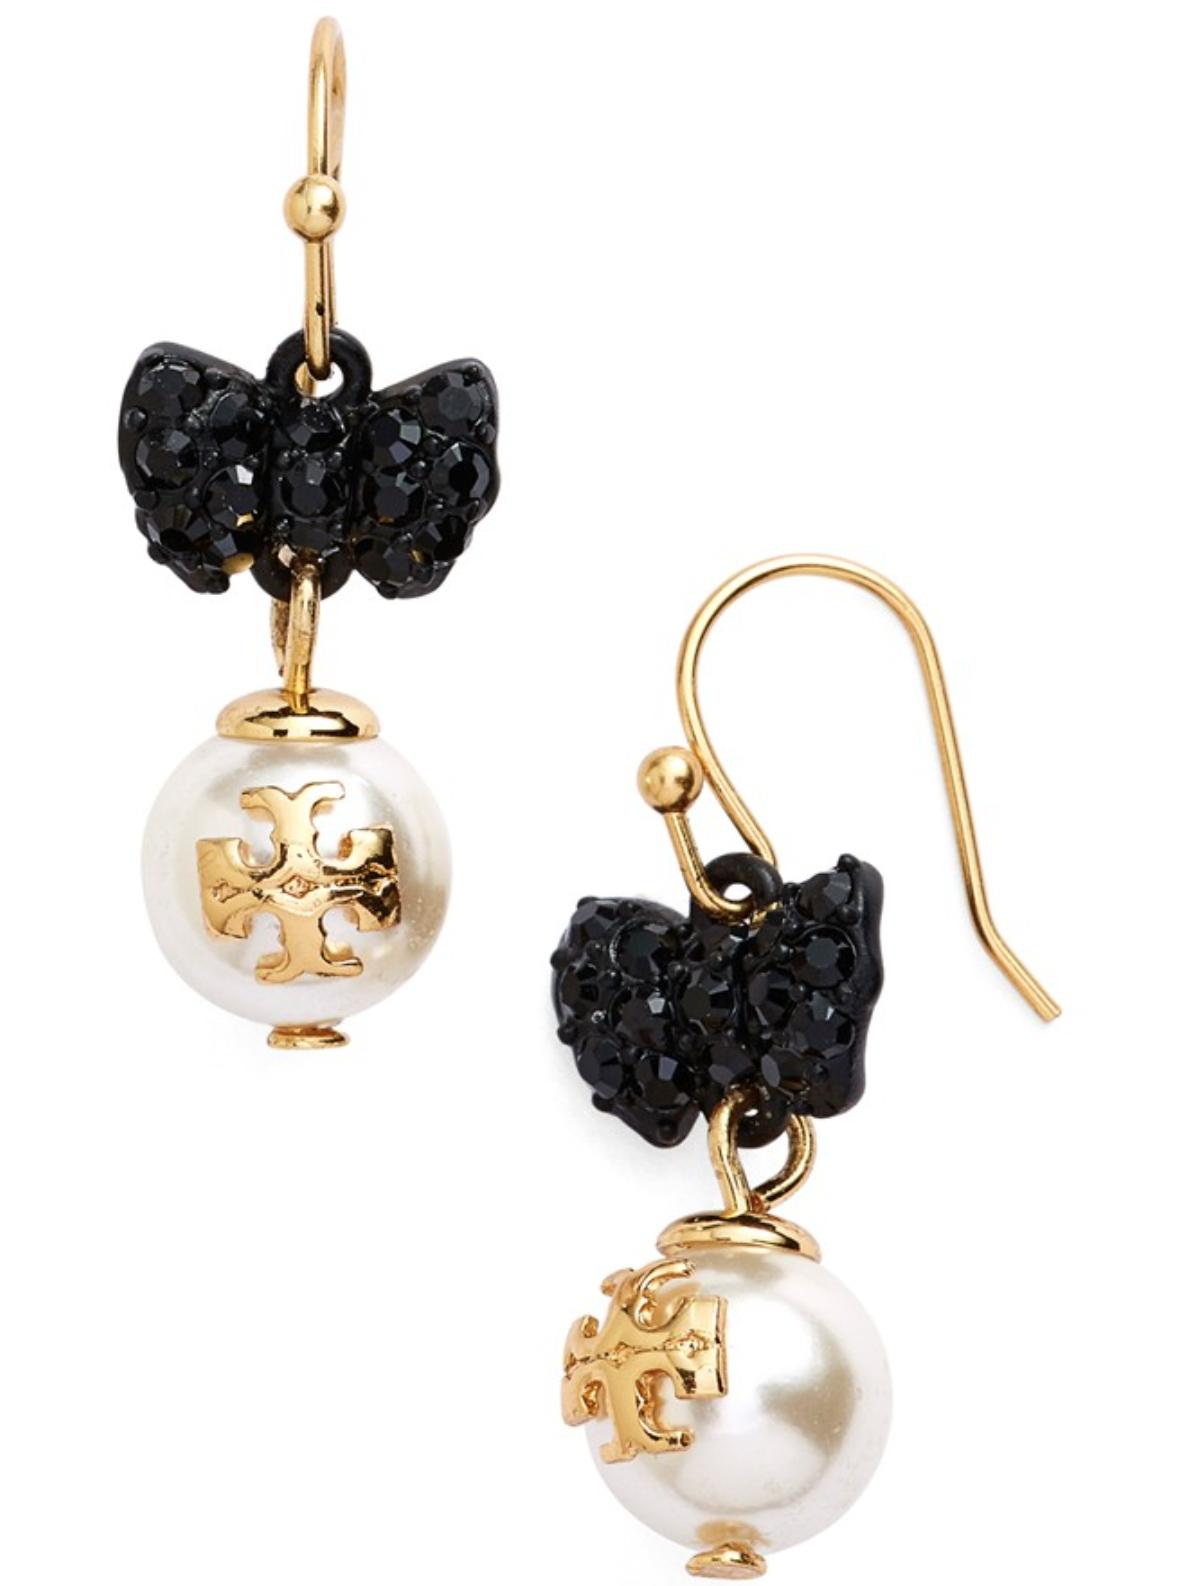 $63.65 Tory Burch 'Evie' Faux Pearl Drop Earrings On Sale @ Nordstrom